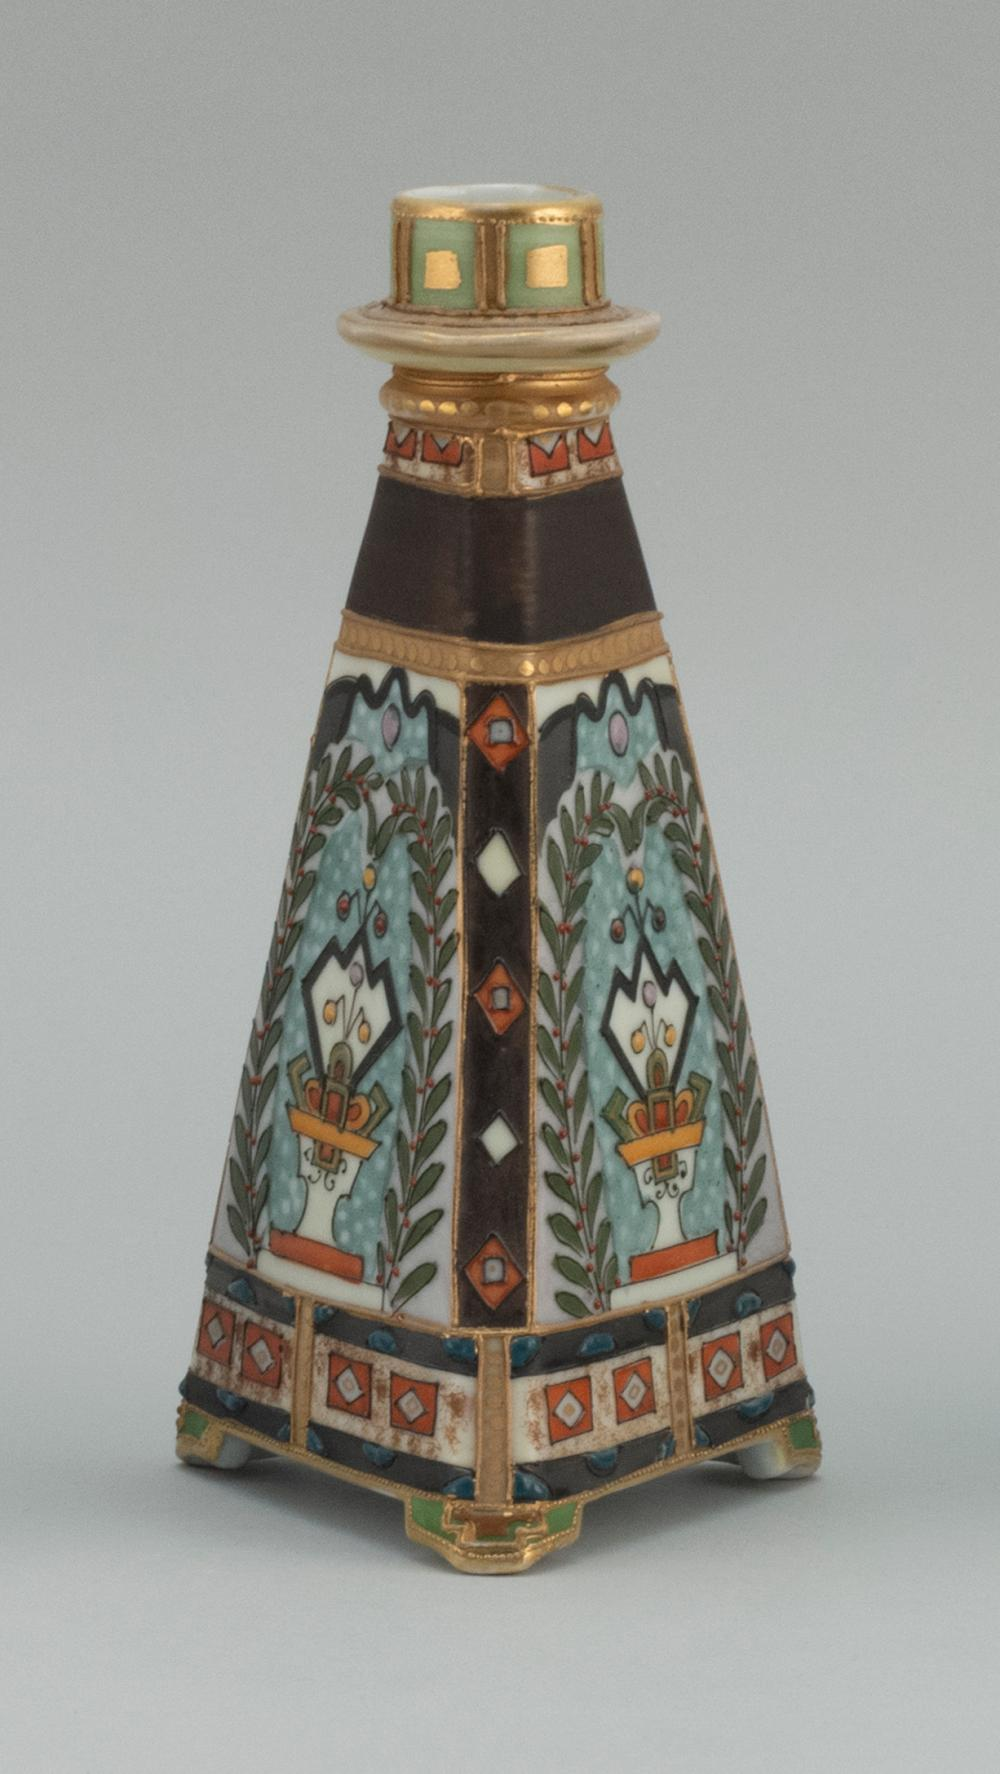 NIPPON PORCELAIN CANDLESTICK In pyramid form, with relief design of a lion crest. Van Patten #47 mark on base. Height 8